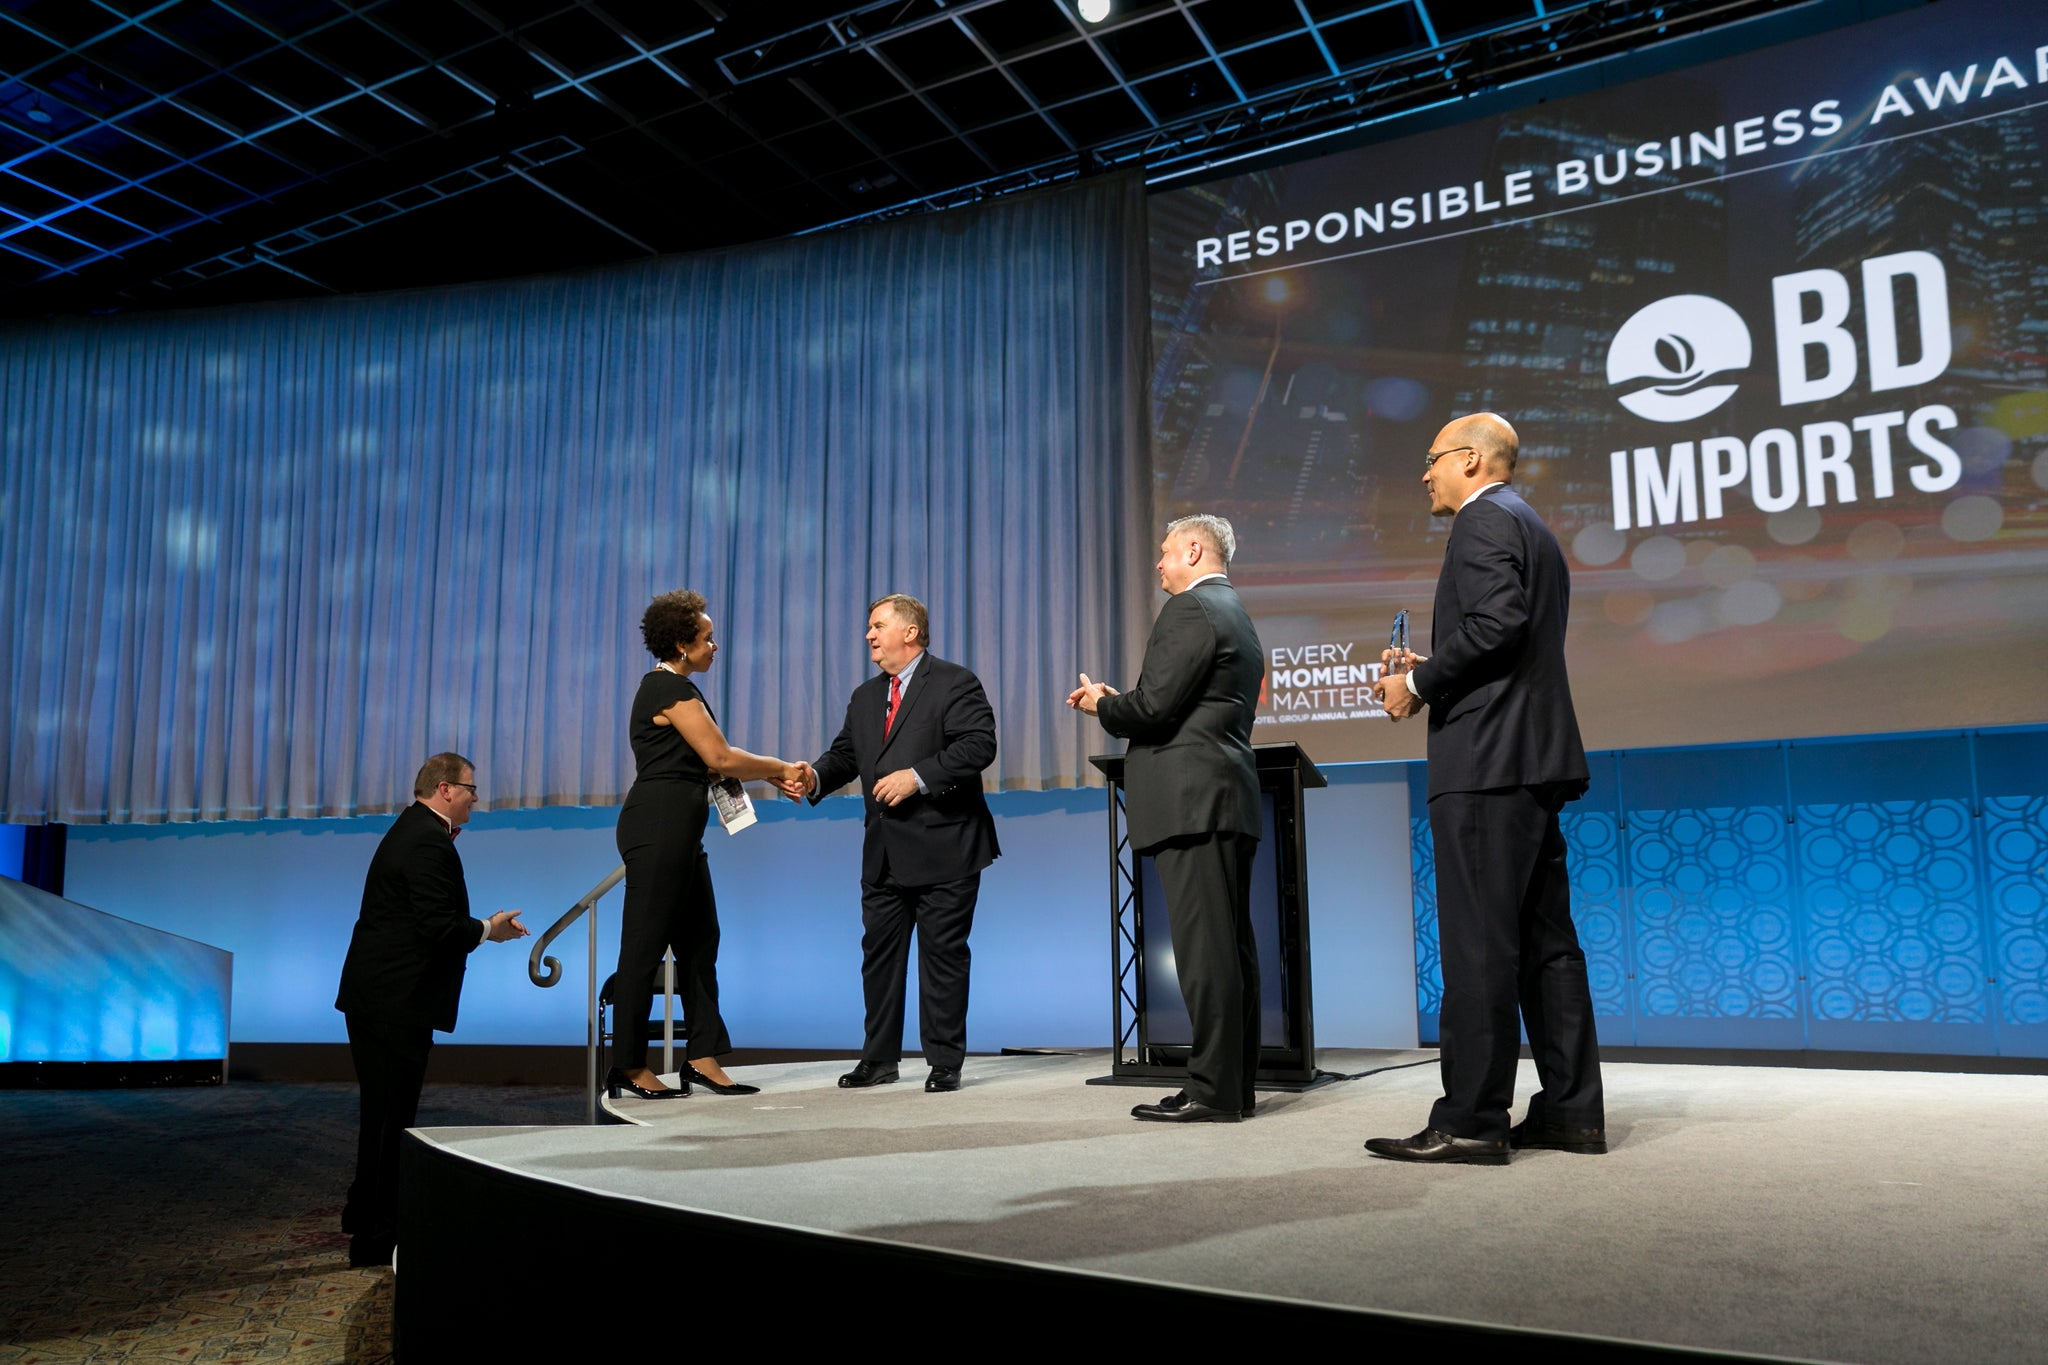 Radisson Hotels Recognizes BD Imports as Responsible Business Supplier of the Year